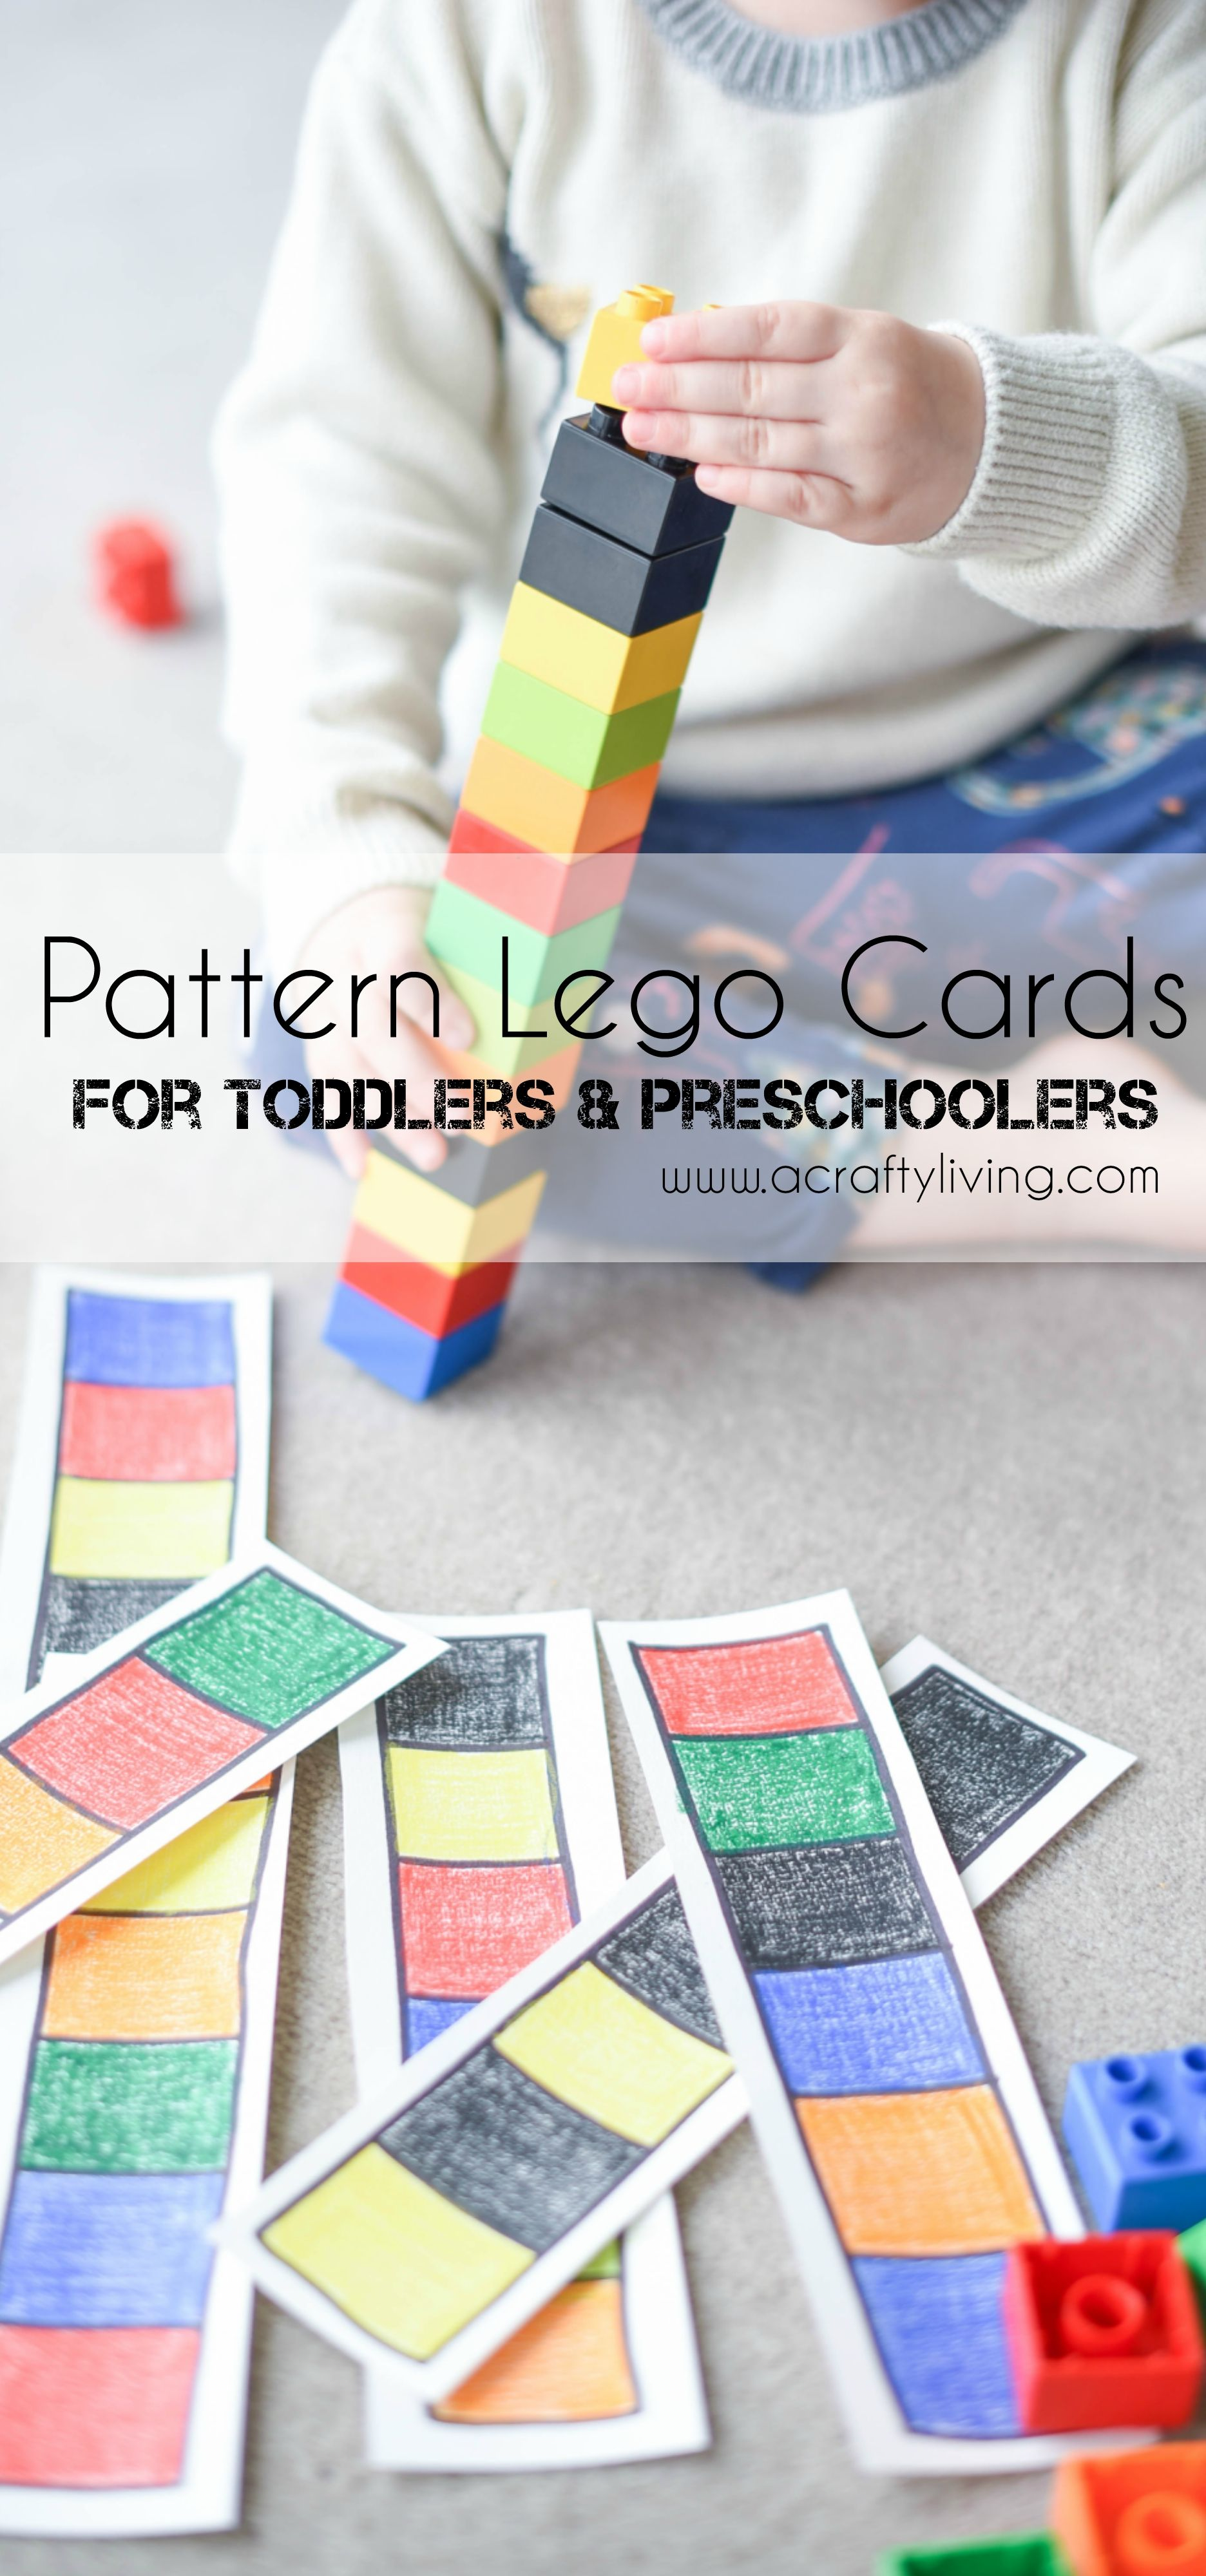 Diy Lego Pattern Cards For Toddlers Amp Preschoolers Raftyliving